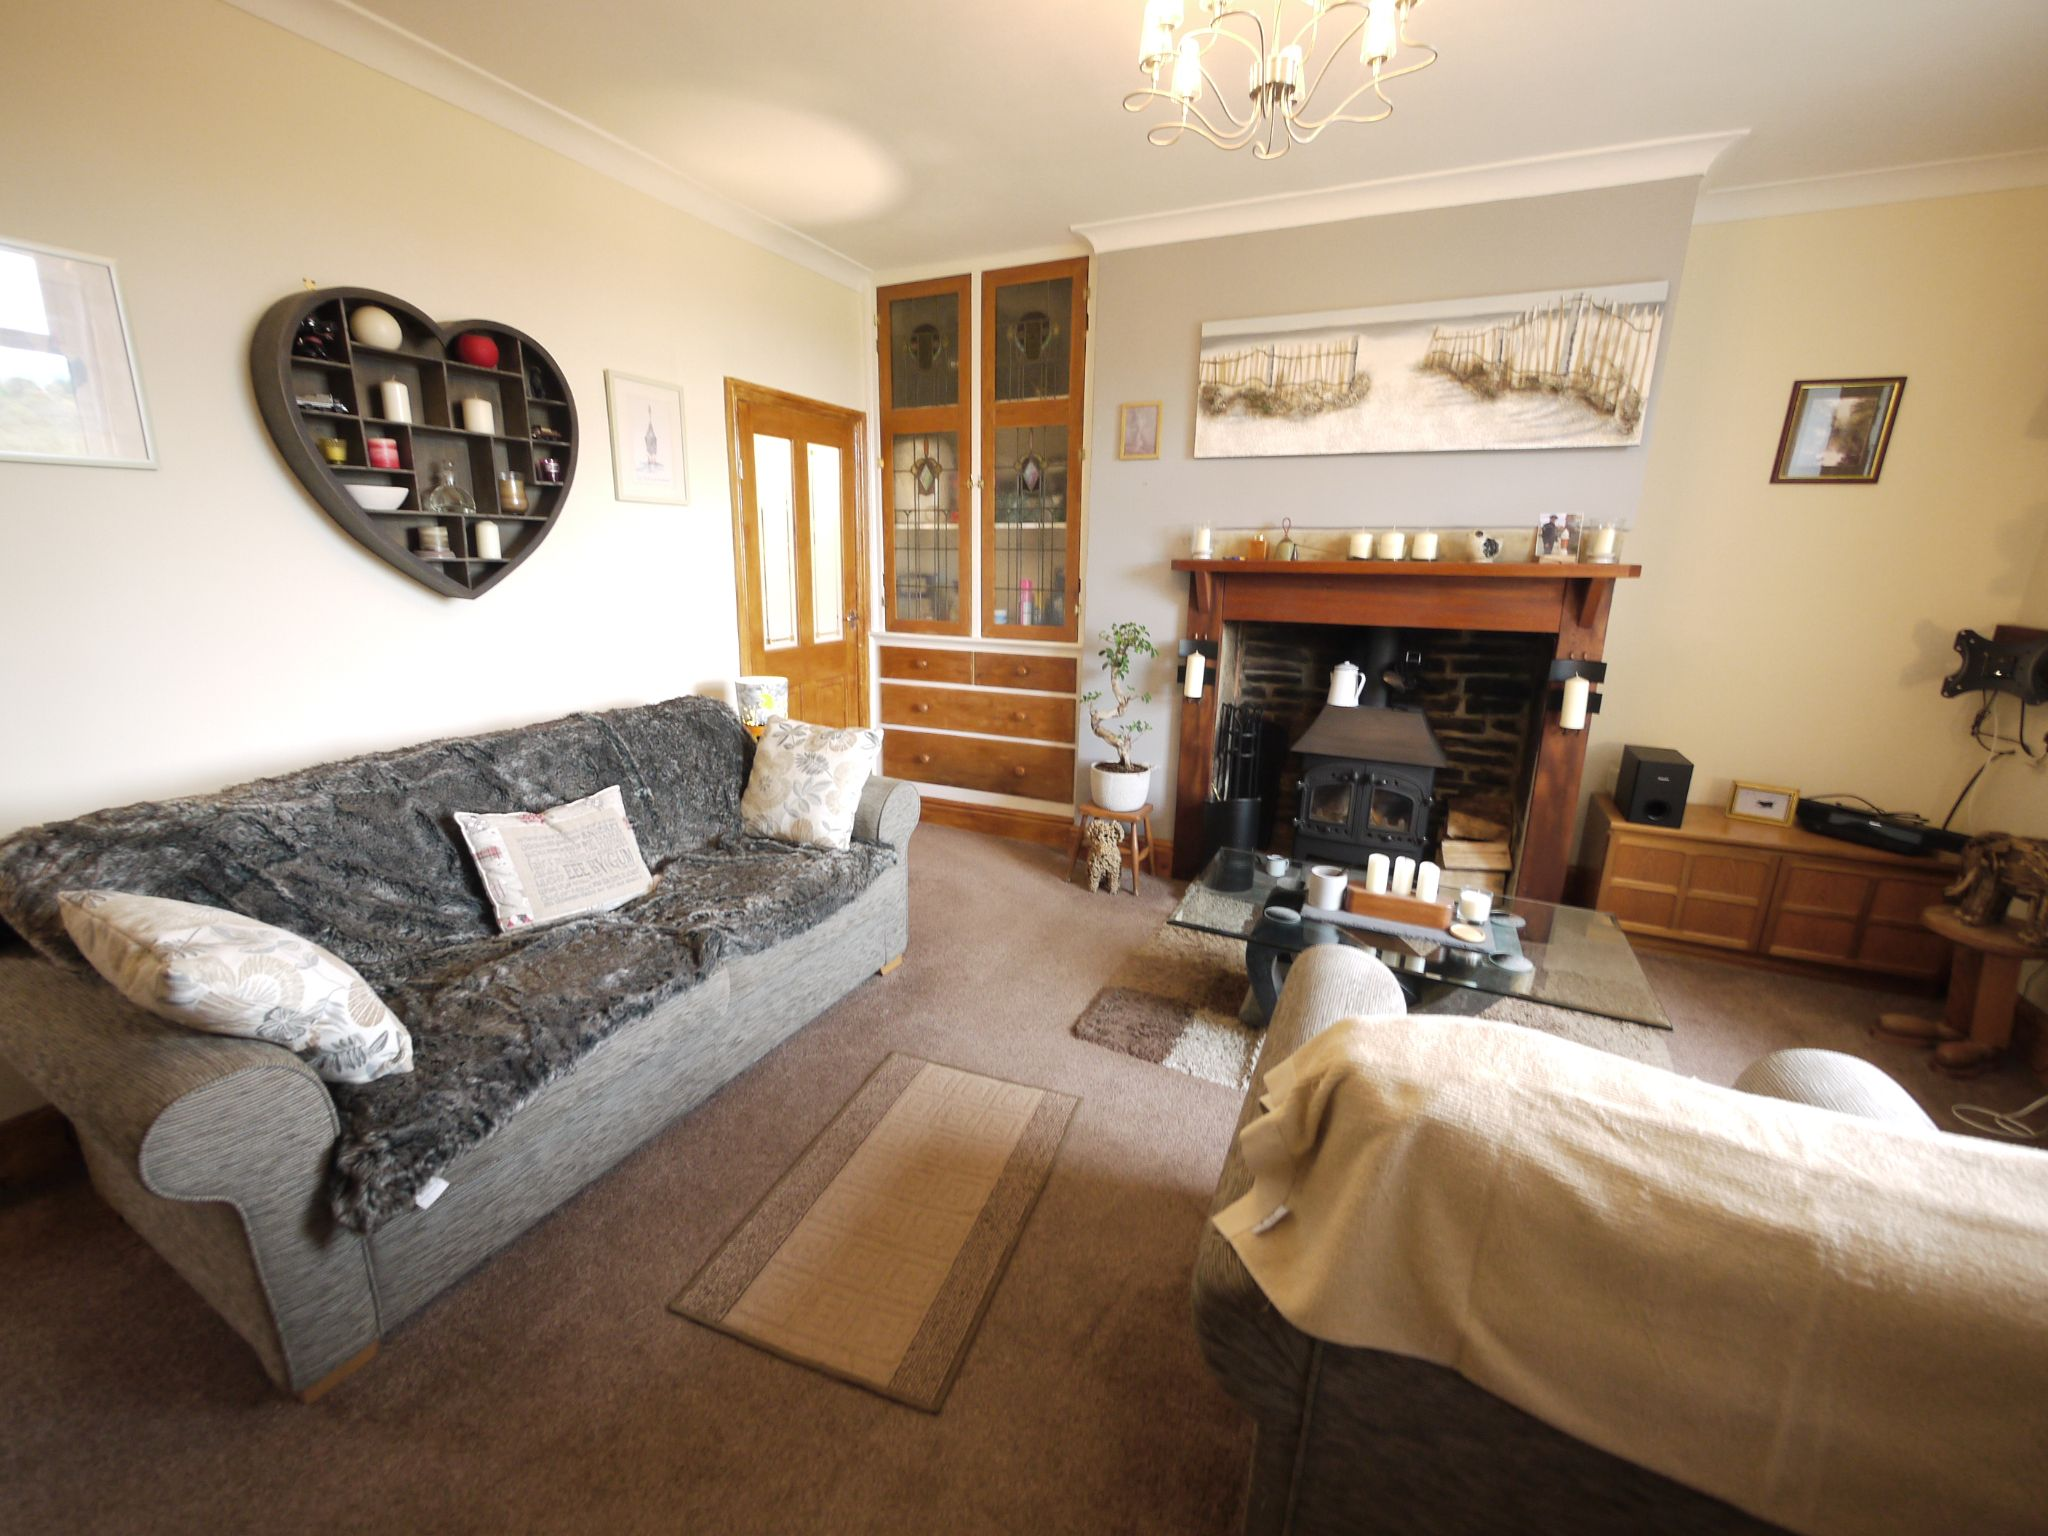 1 bedroom mid terraced house For Sale in Elland - Lounge 2.